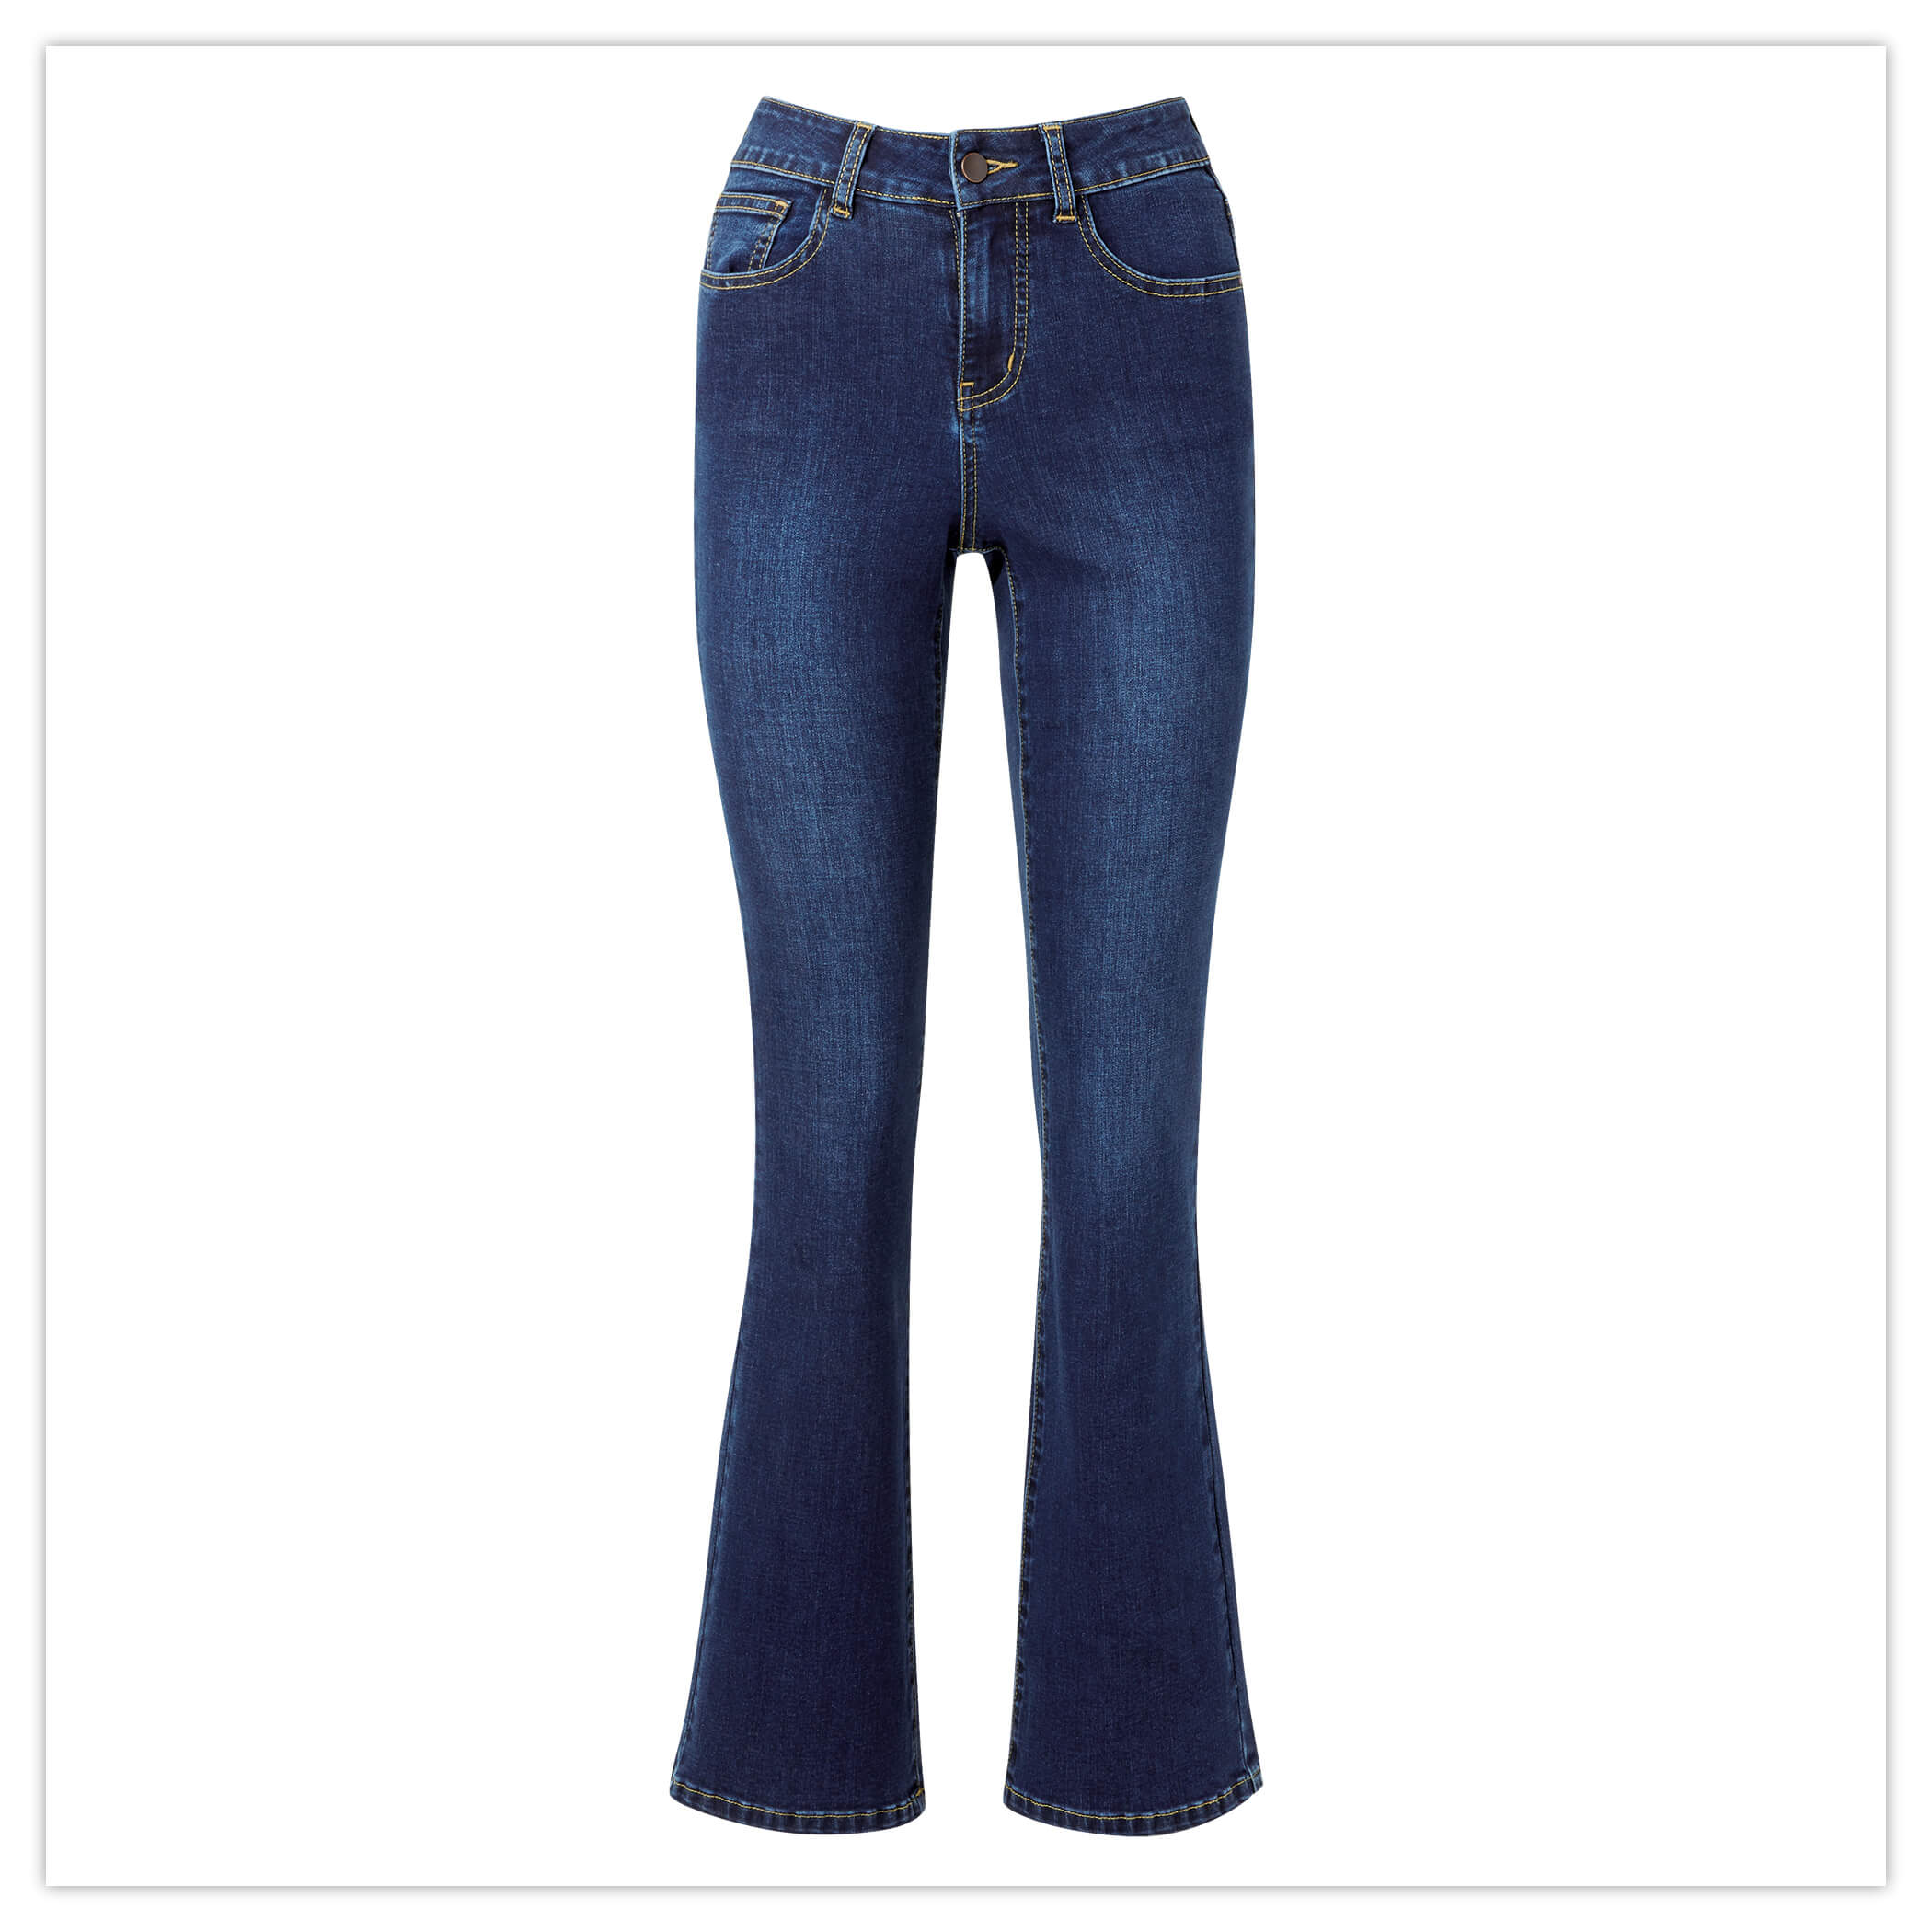 WESTERN BOOTCUT JEANS